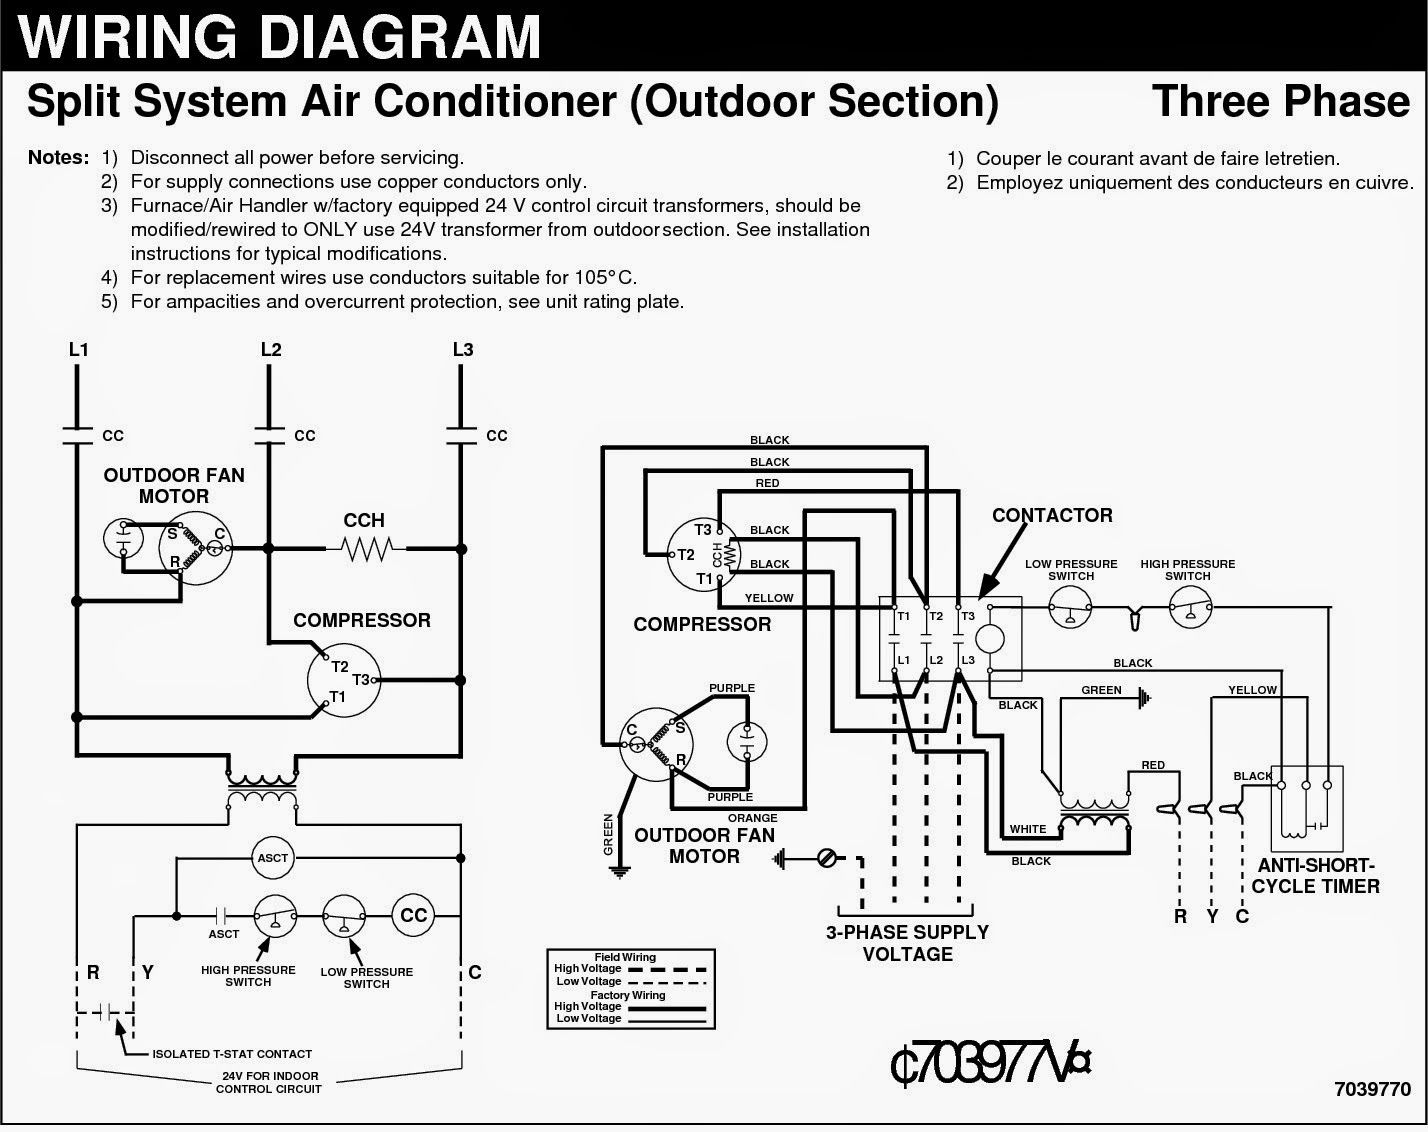 Electrical Wiring Diagrams For Air Conditioning Systems Part Two Electrical Knowhow Air Conditioning System Electrical Wiring Diagram Electrical Diagram